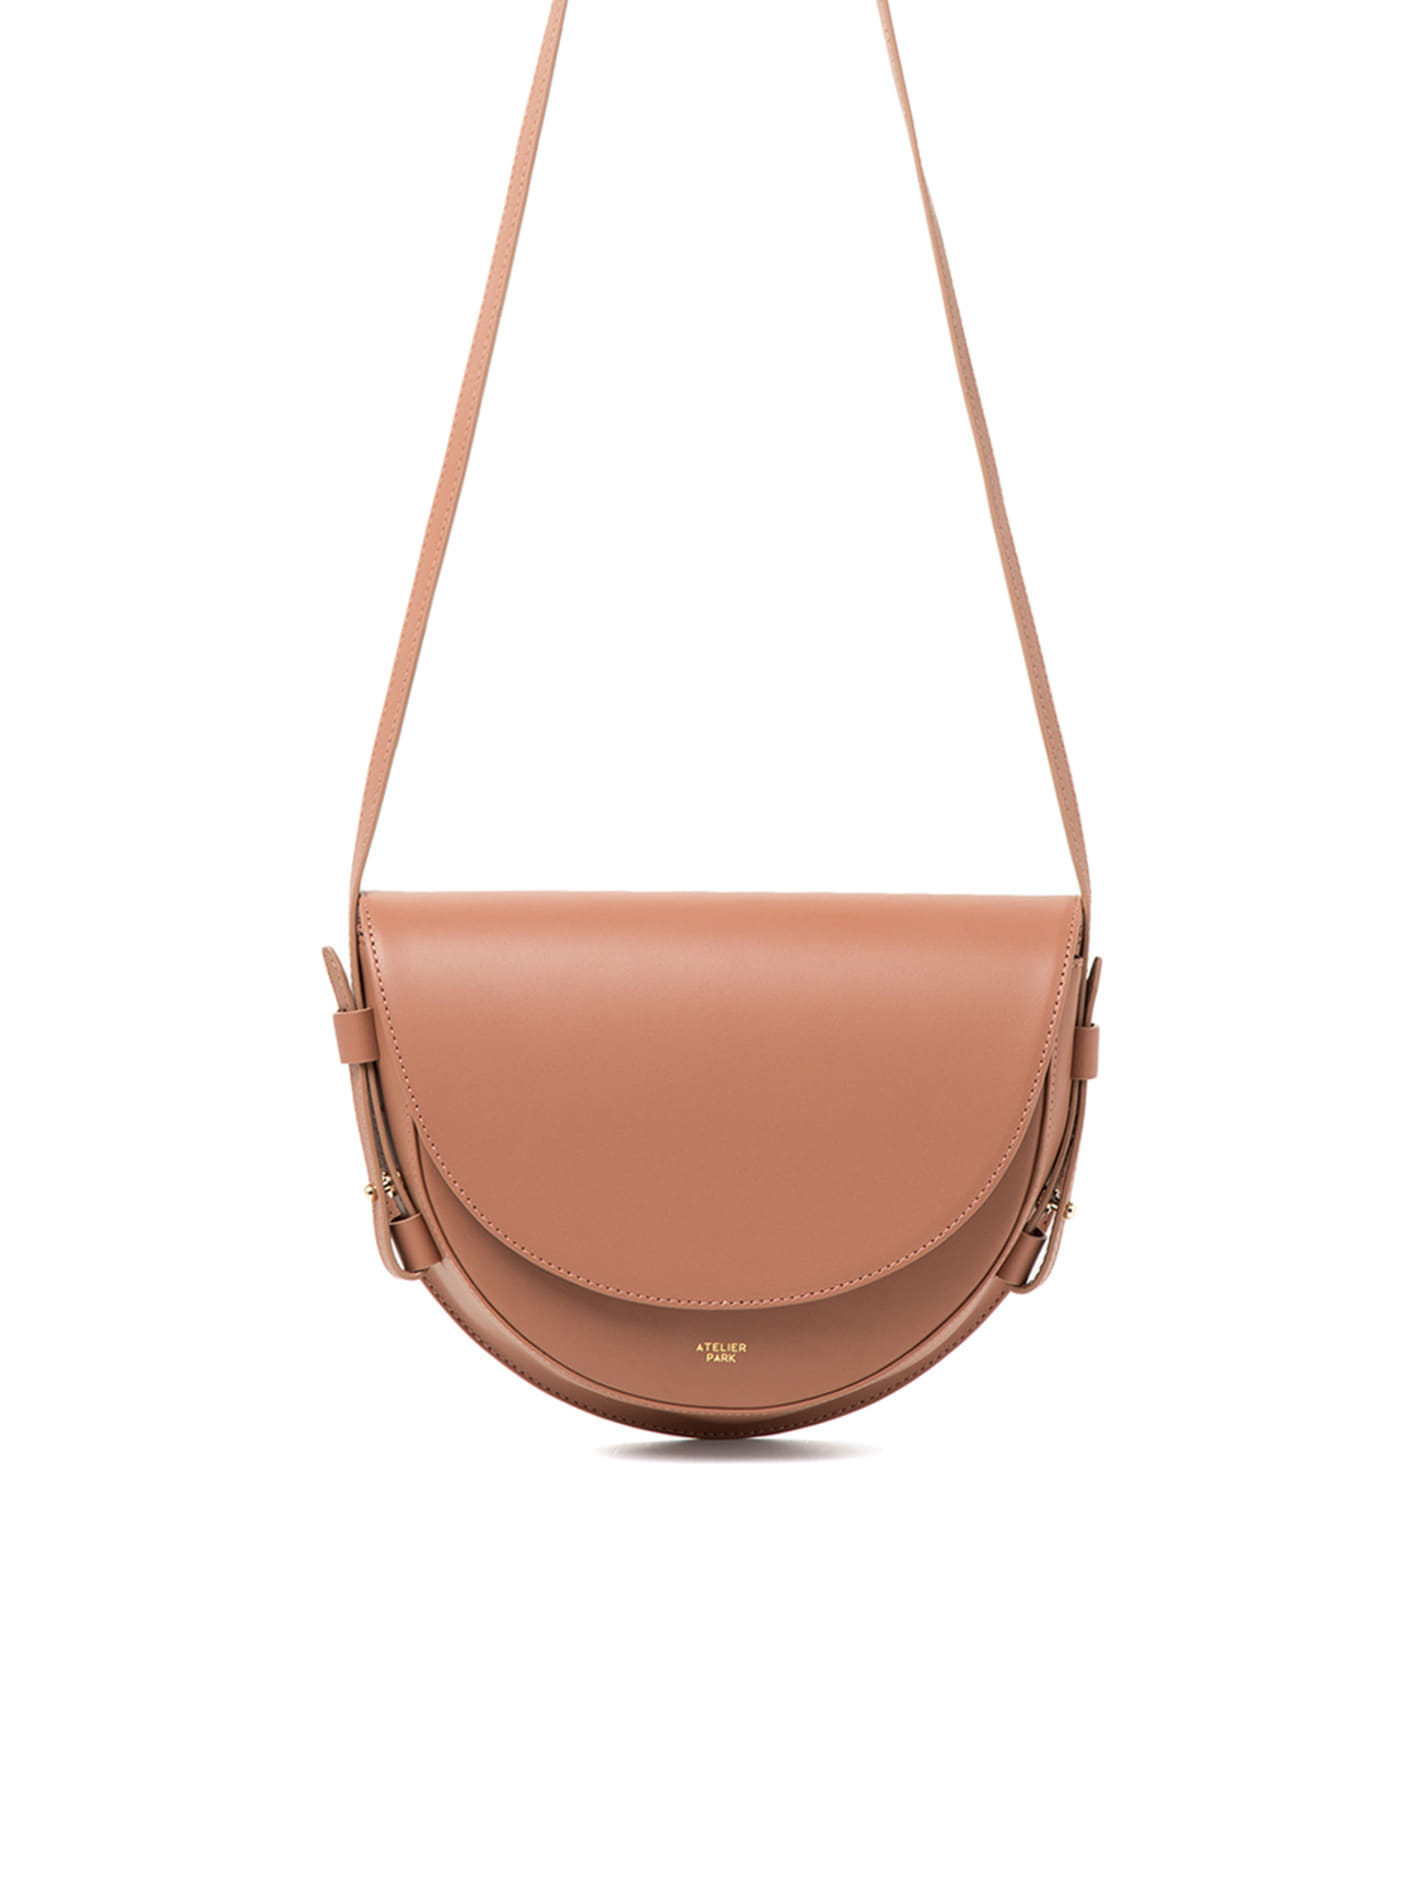 COW LEATHER LAMI BAG - PINK